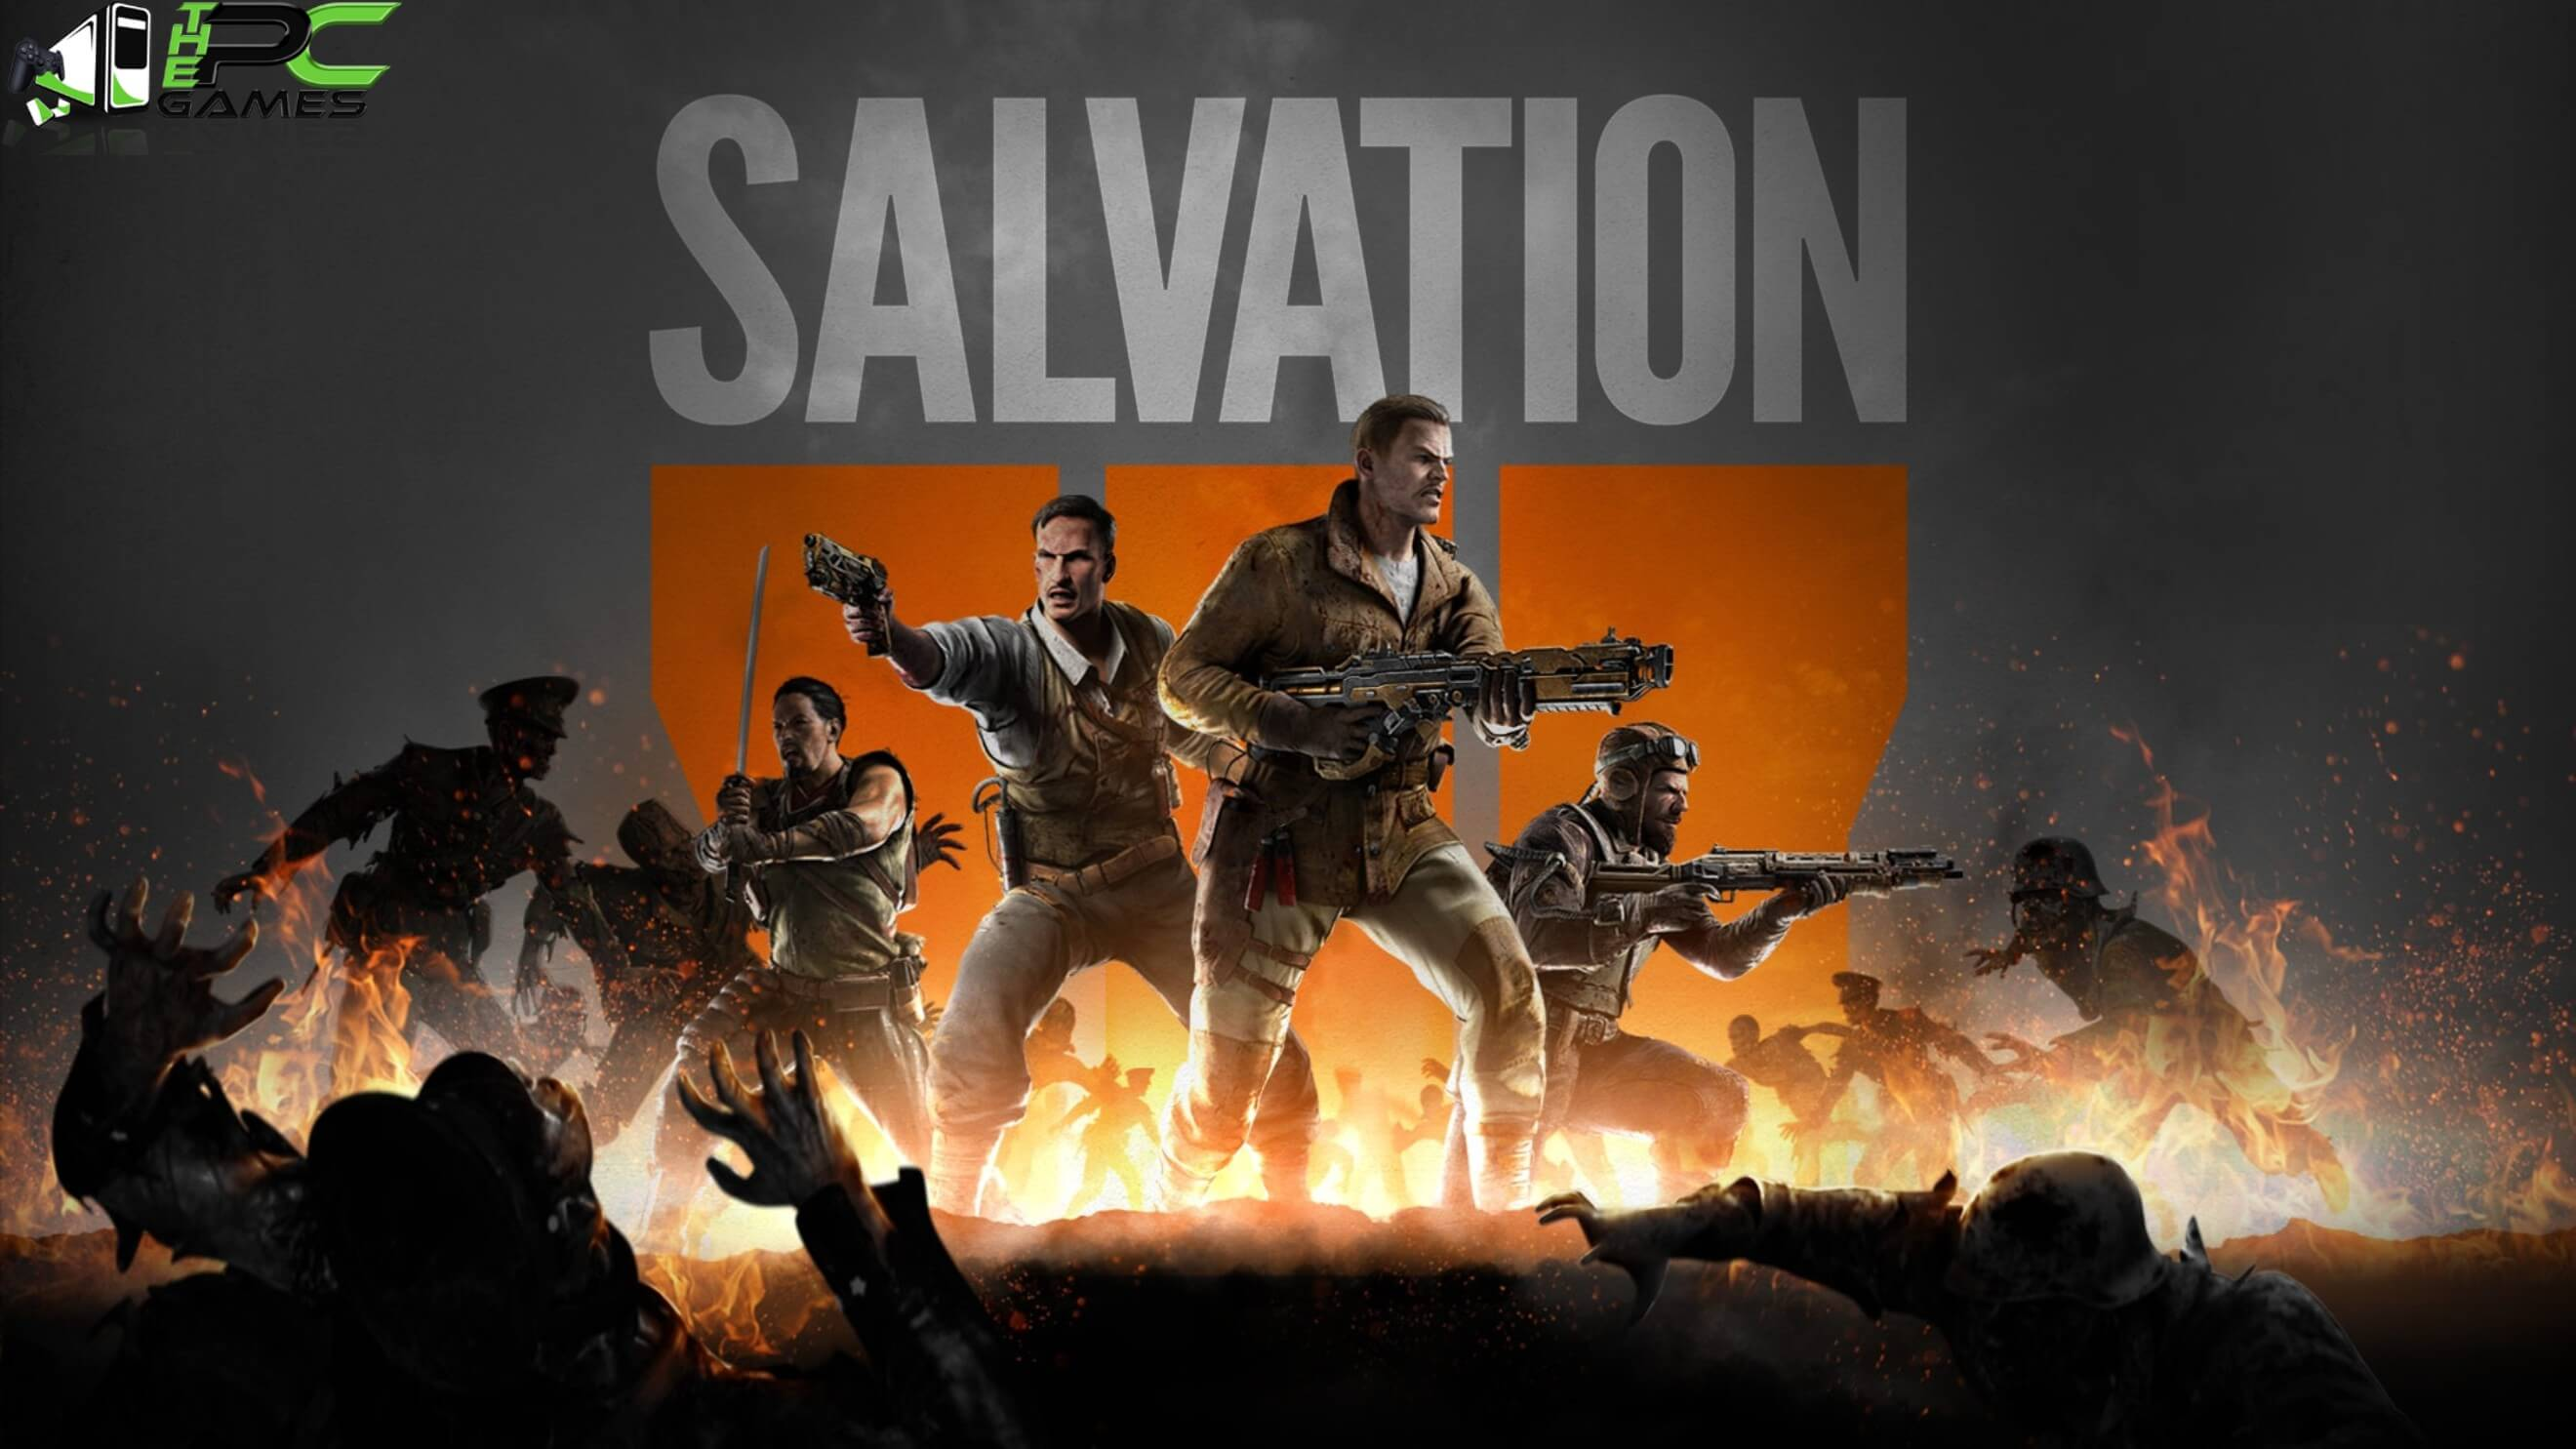 Call of Duty Black Ops 3 Salvation DLC Poster